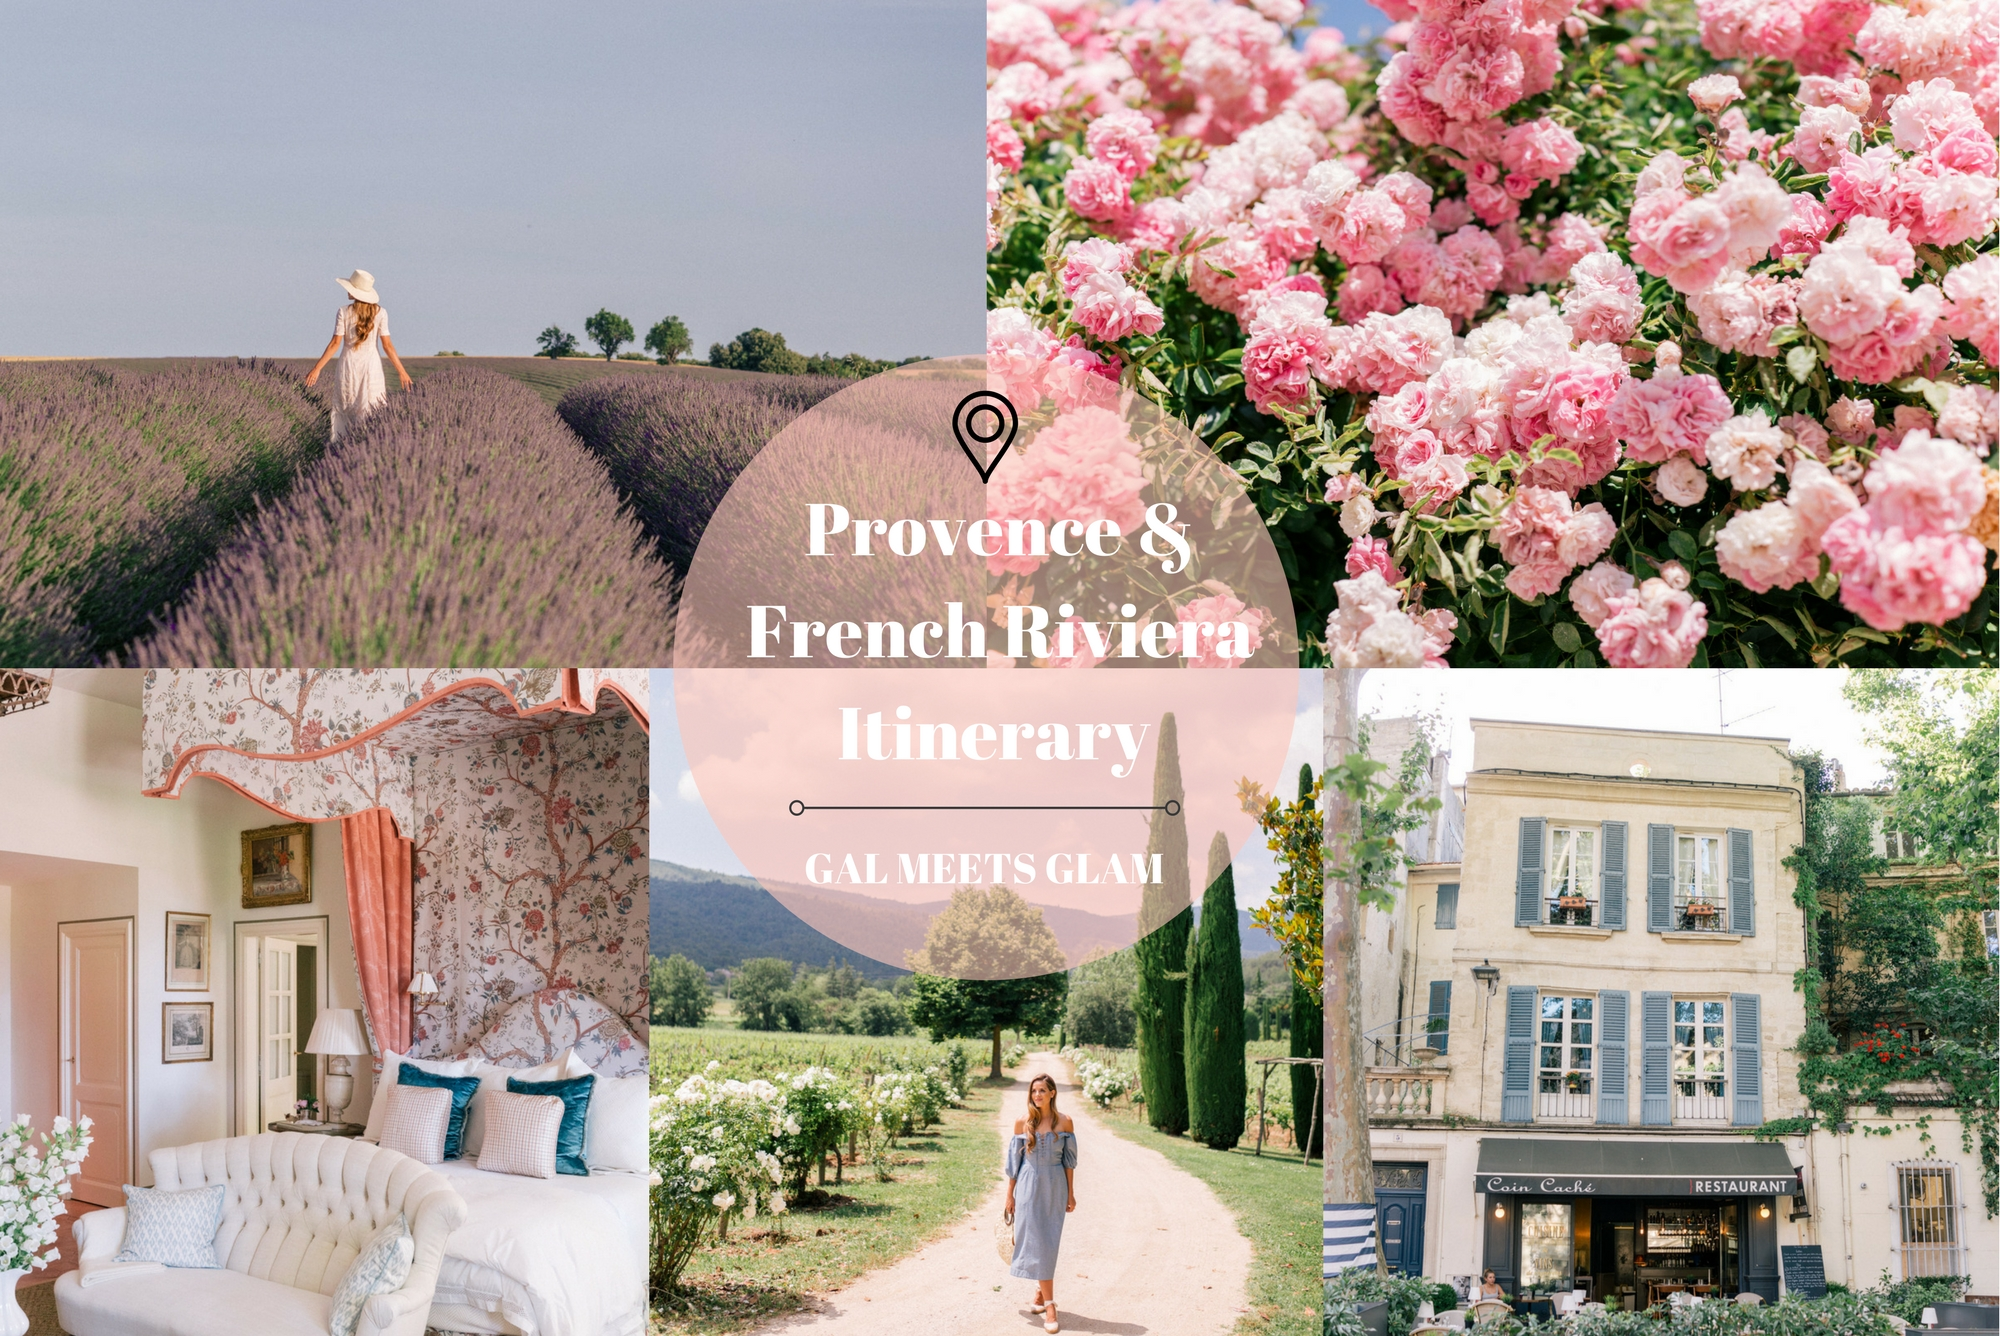 Provence &French RivieraItinerary